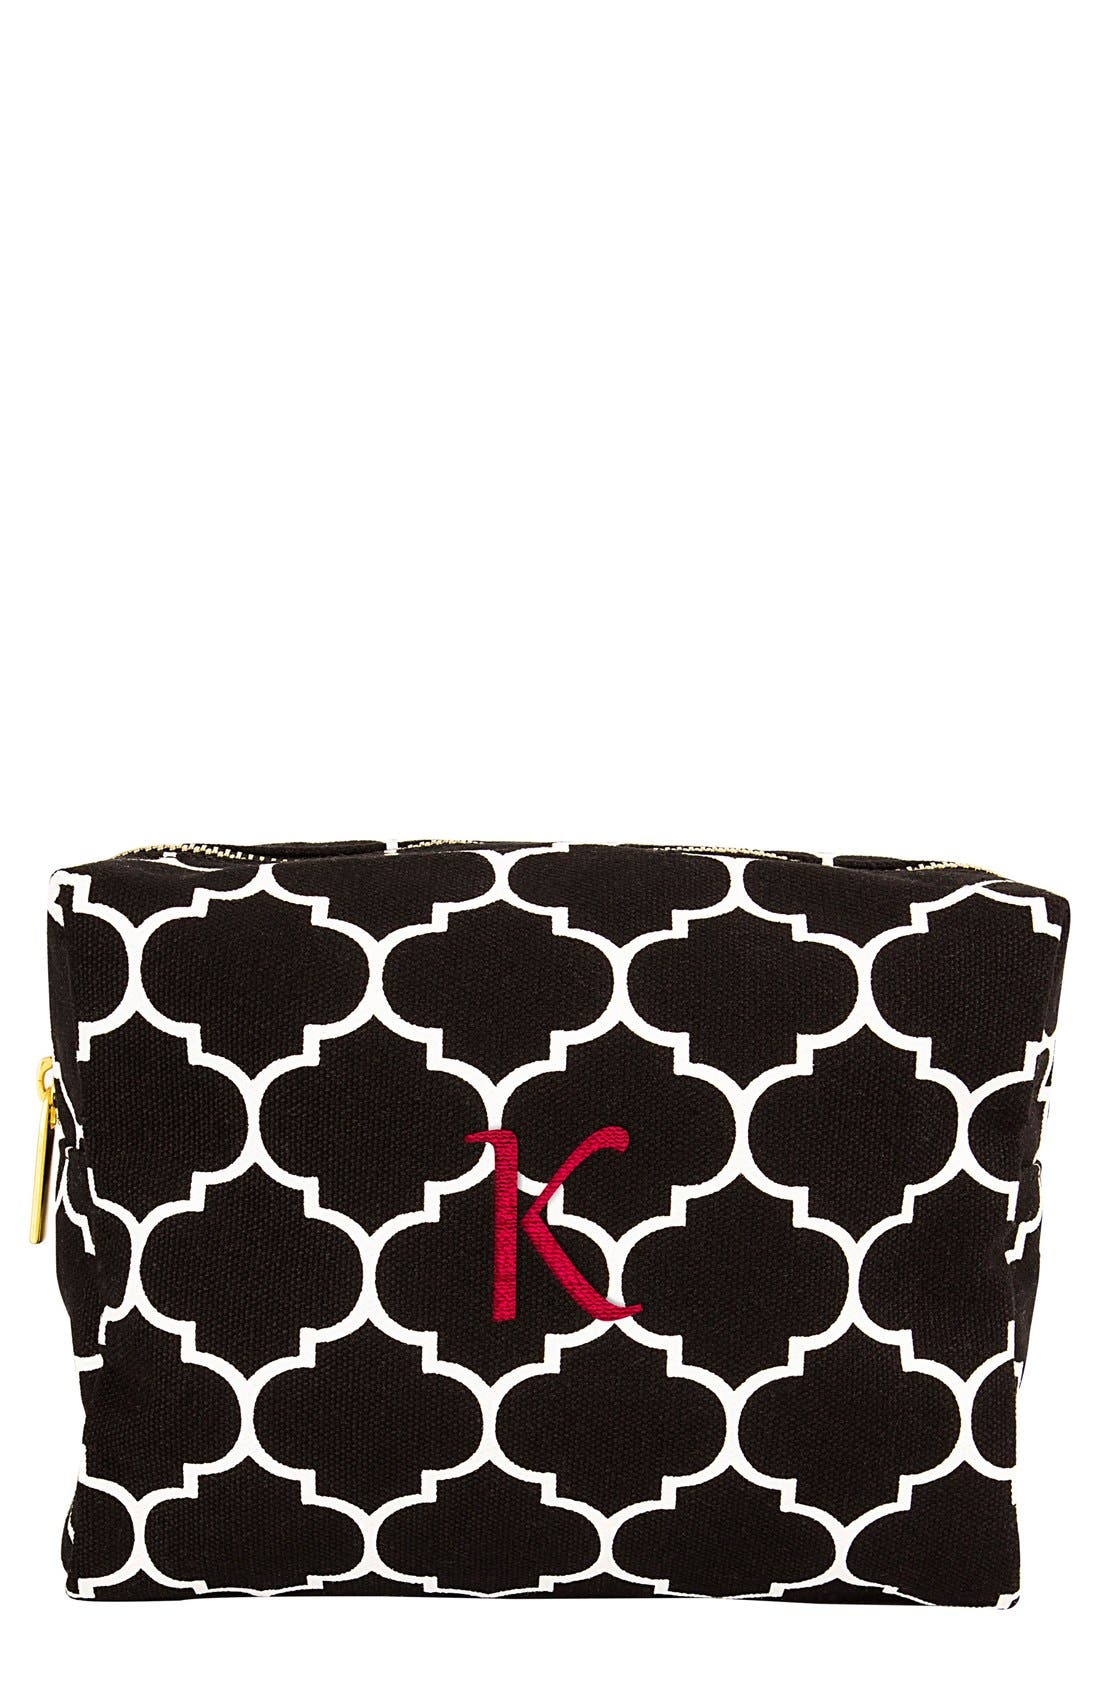 Monogram Cosmetics Bag,                             Main thumbnail 1, color,                             Black-K